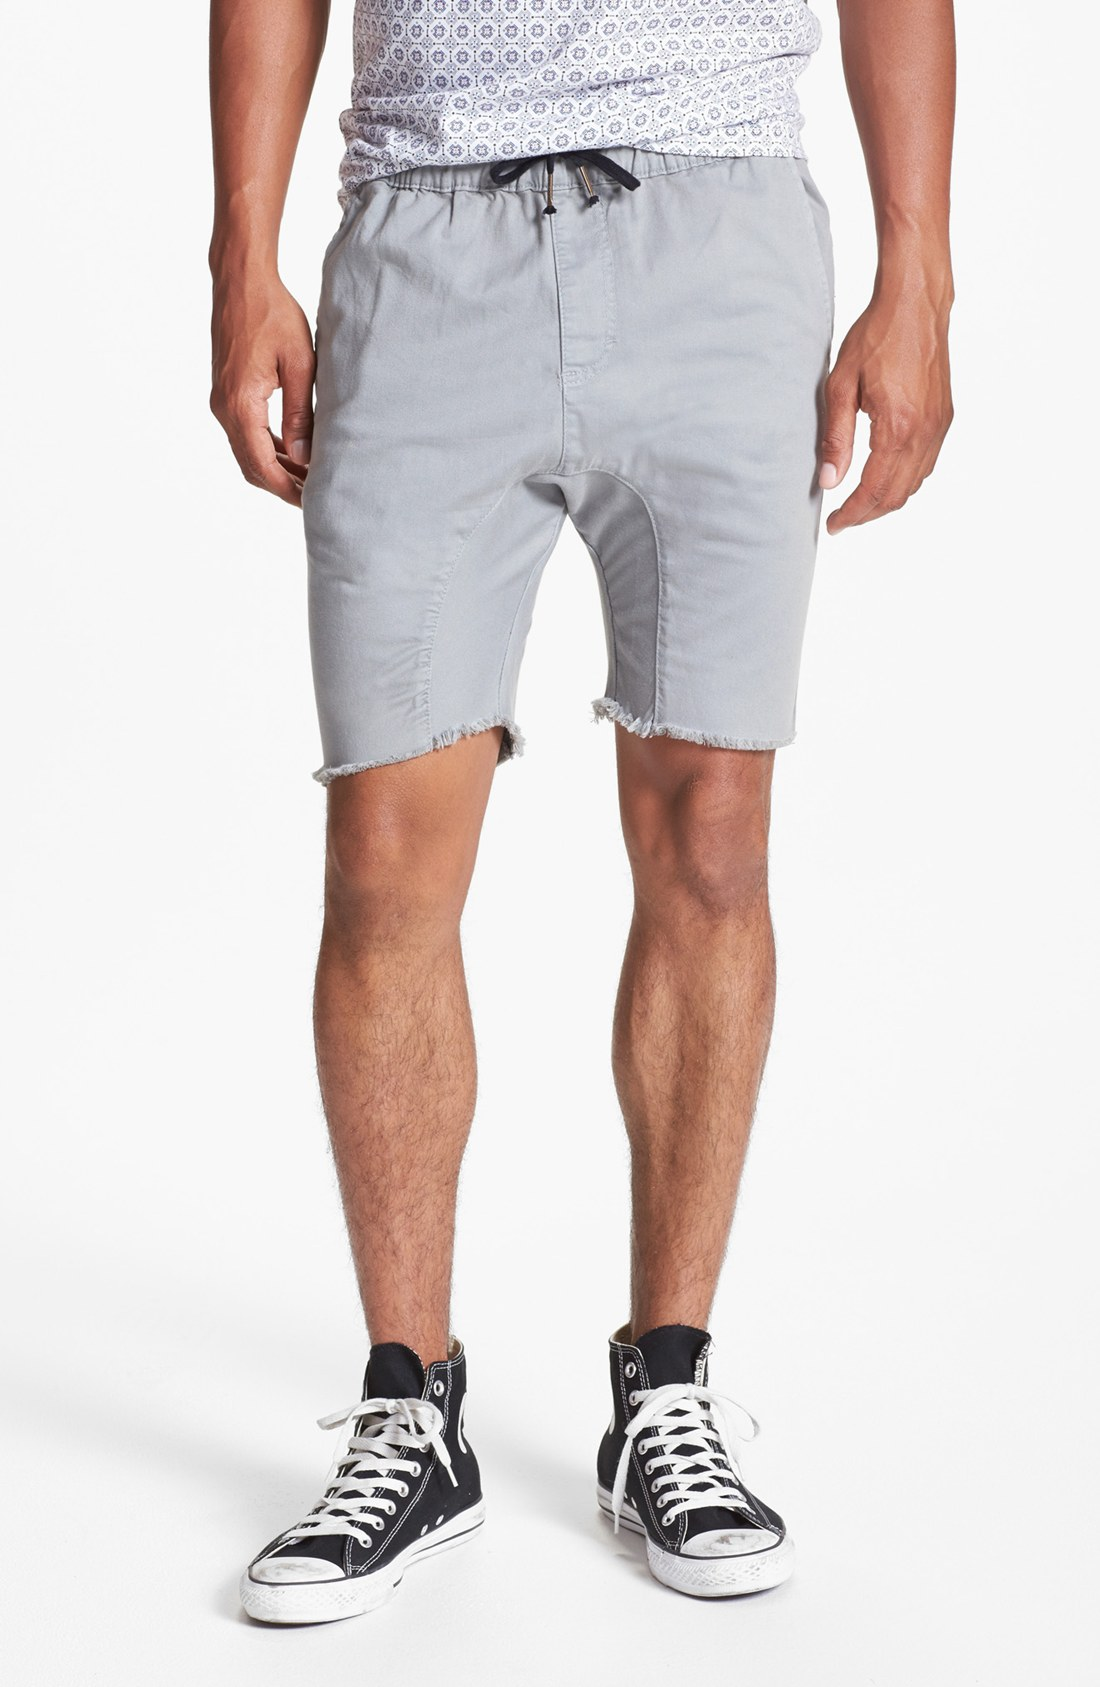 Cut Shorts Mens - The Else